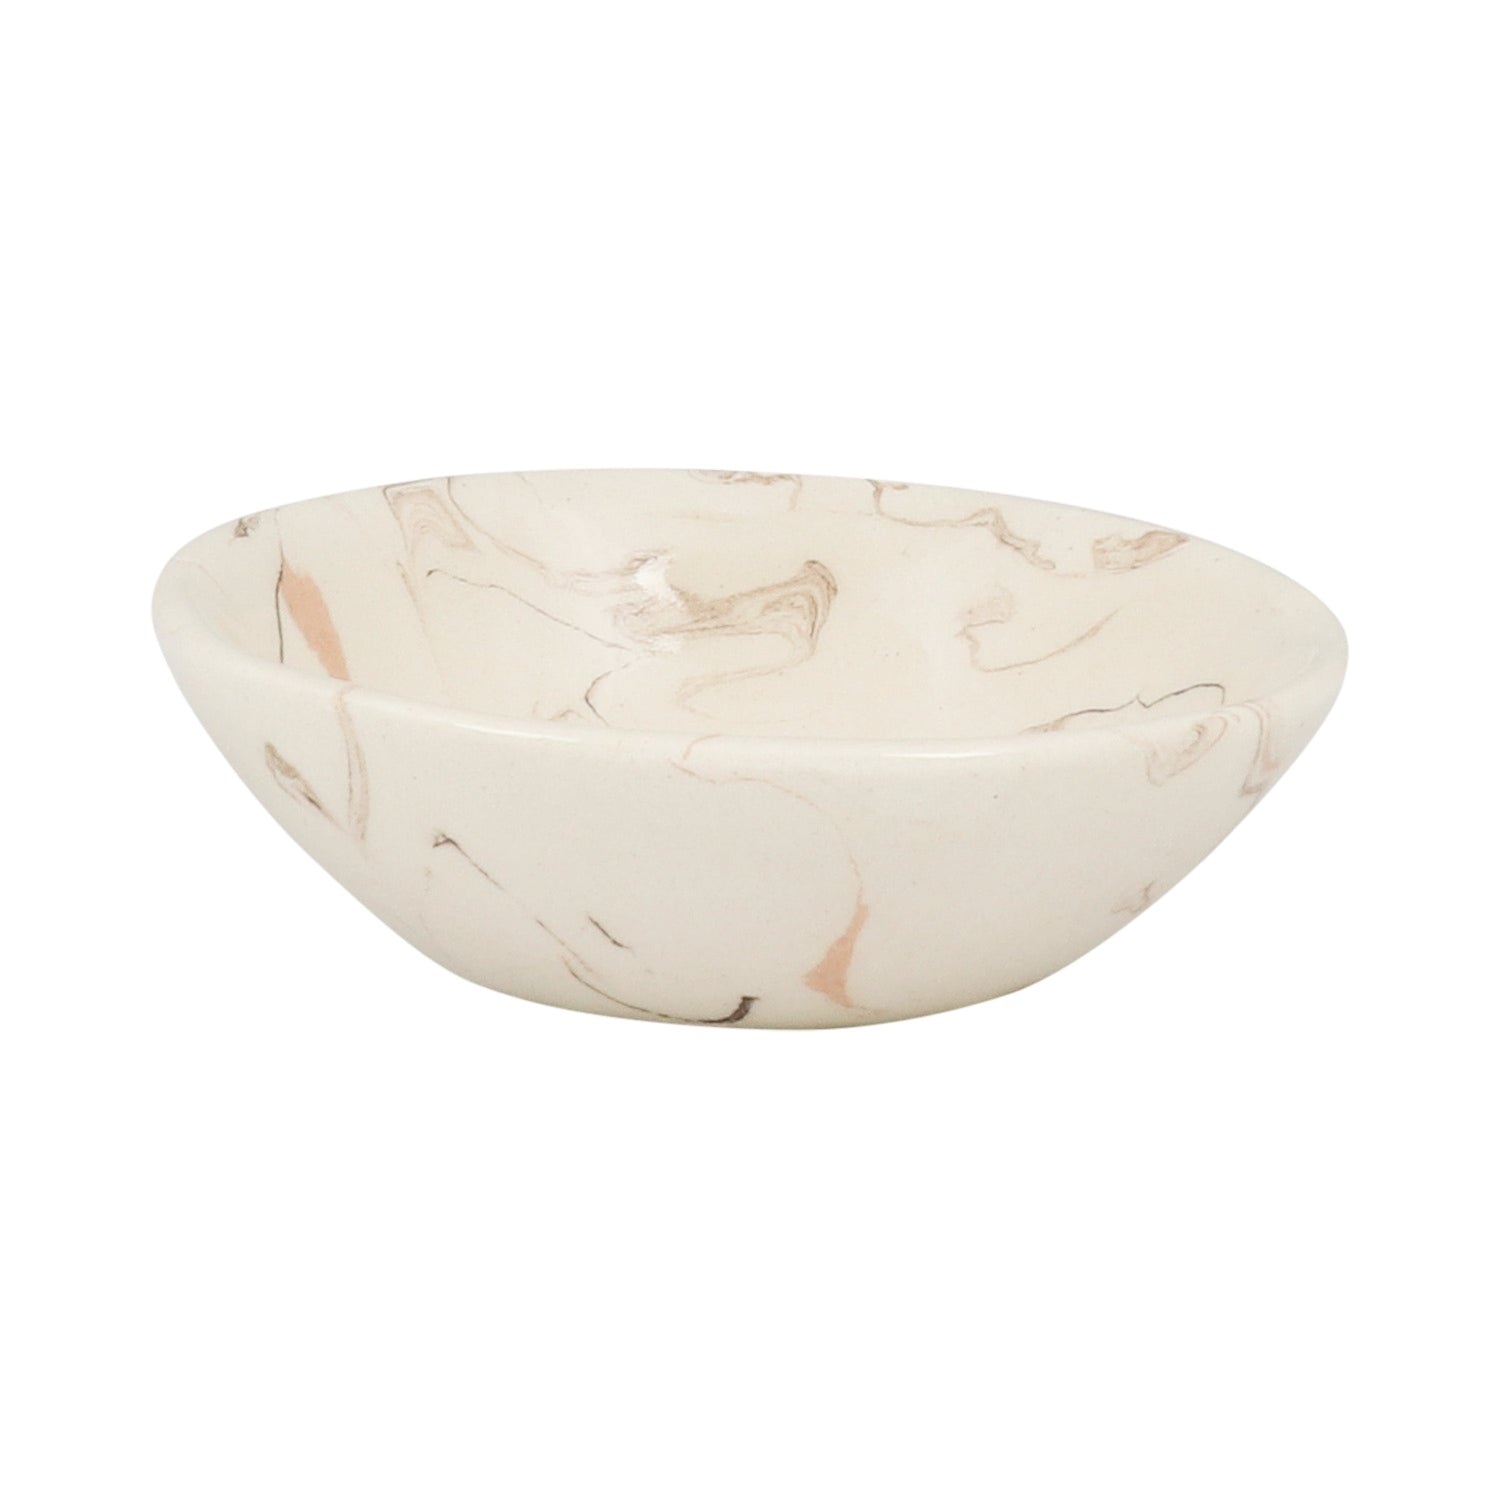 Cream Swirl Earthenware Condiment Bowl - 10cm